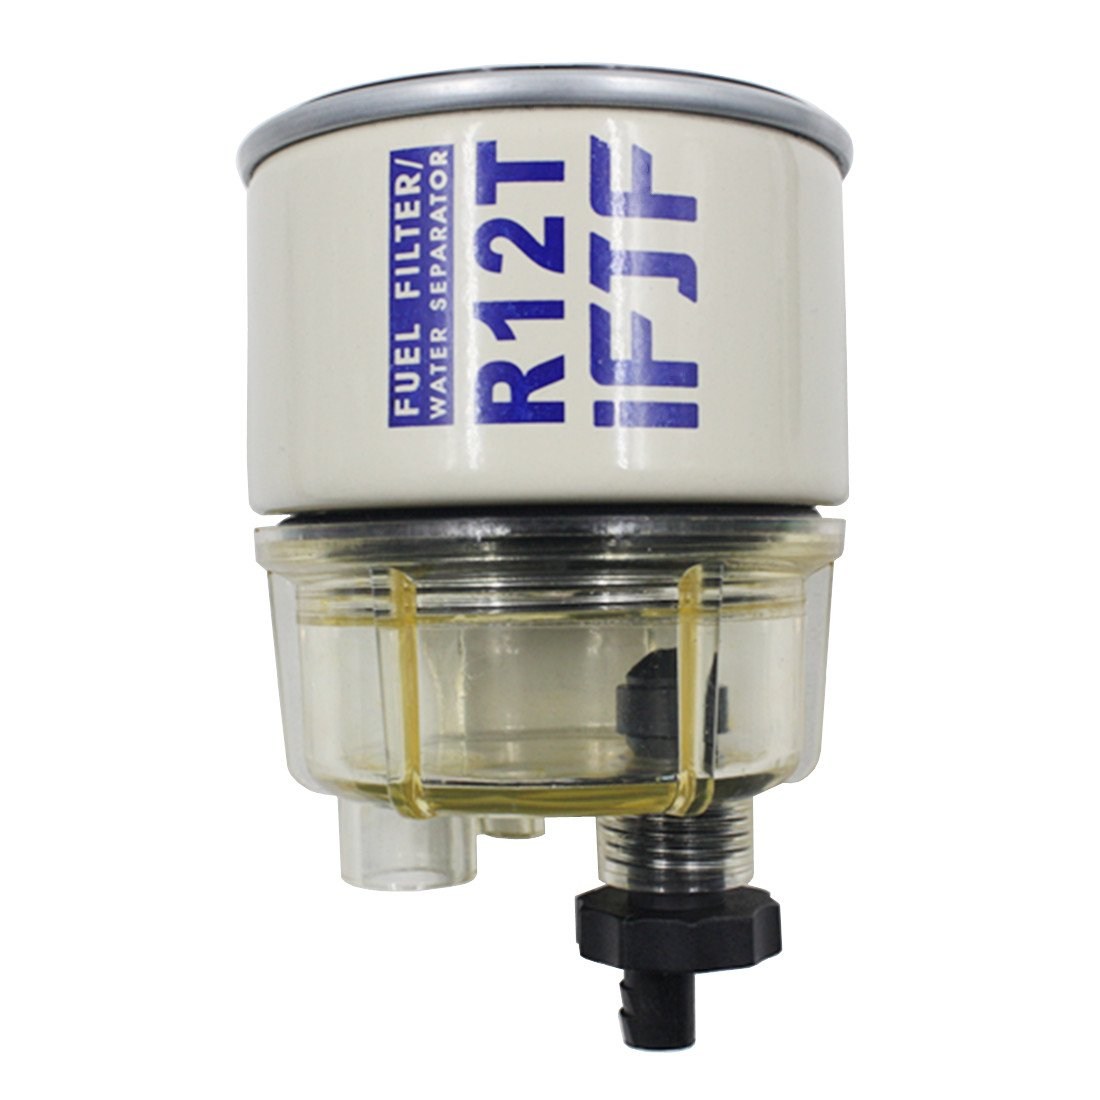 Ifjf Automotive Replacement Filter And Nylon Collection Mercury Fuel Housing Bowl Of R12t Water Separator 120at Npt Zg1 4 19 Element Fit